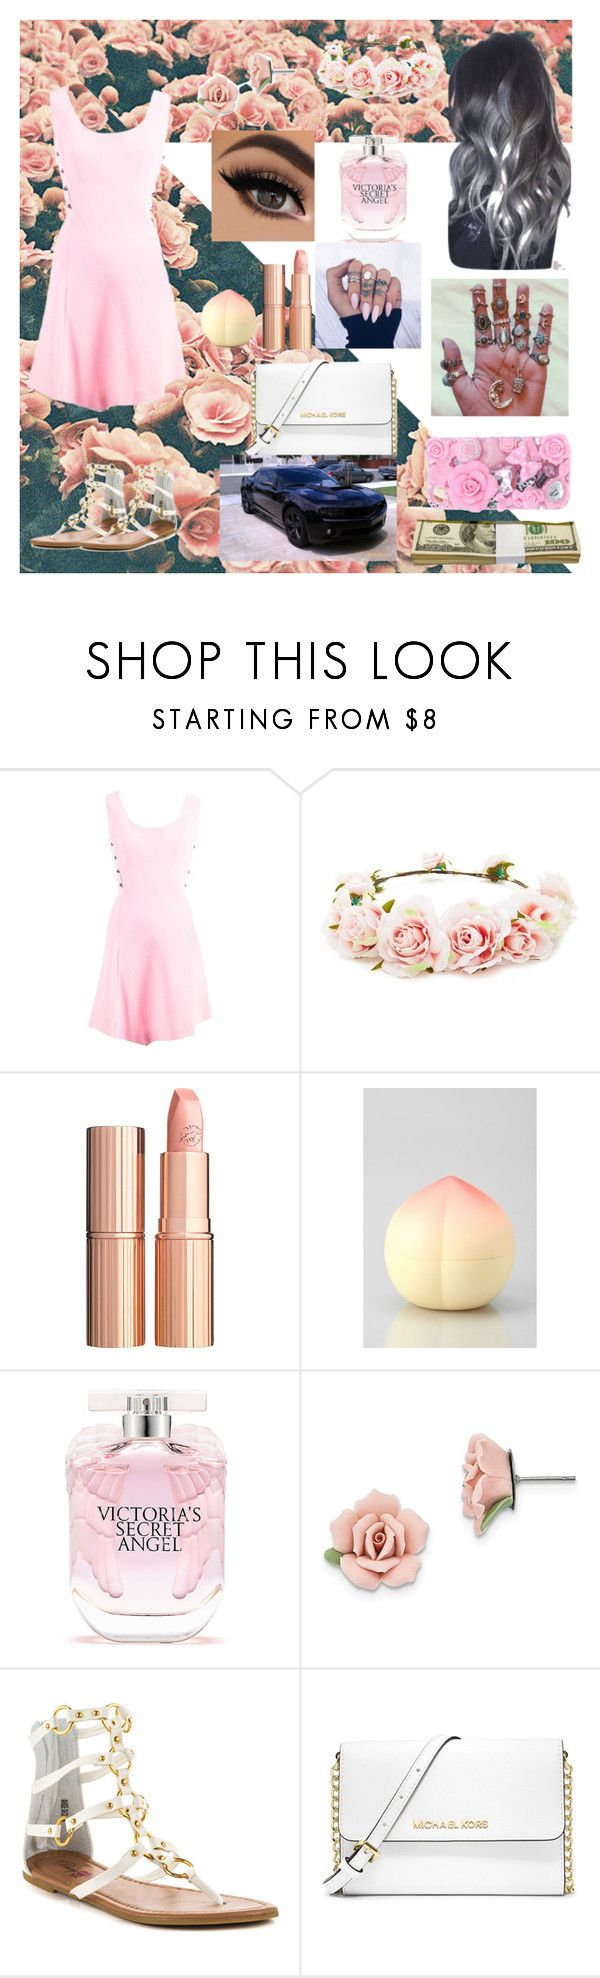 """babygirl."" by where-the-wild-thing-are ❤ liked on Polyvore featuring Versace, Forever 21, Charlotte Tilbury, TONYMOLY, Victoria's Secret, 1928, Penny Loves Kenny, MICHAEL Michael Kors and MoMo"